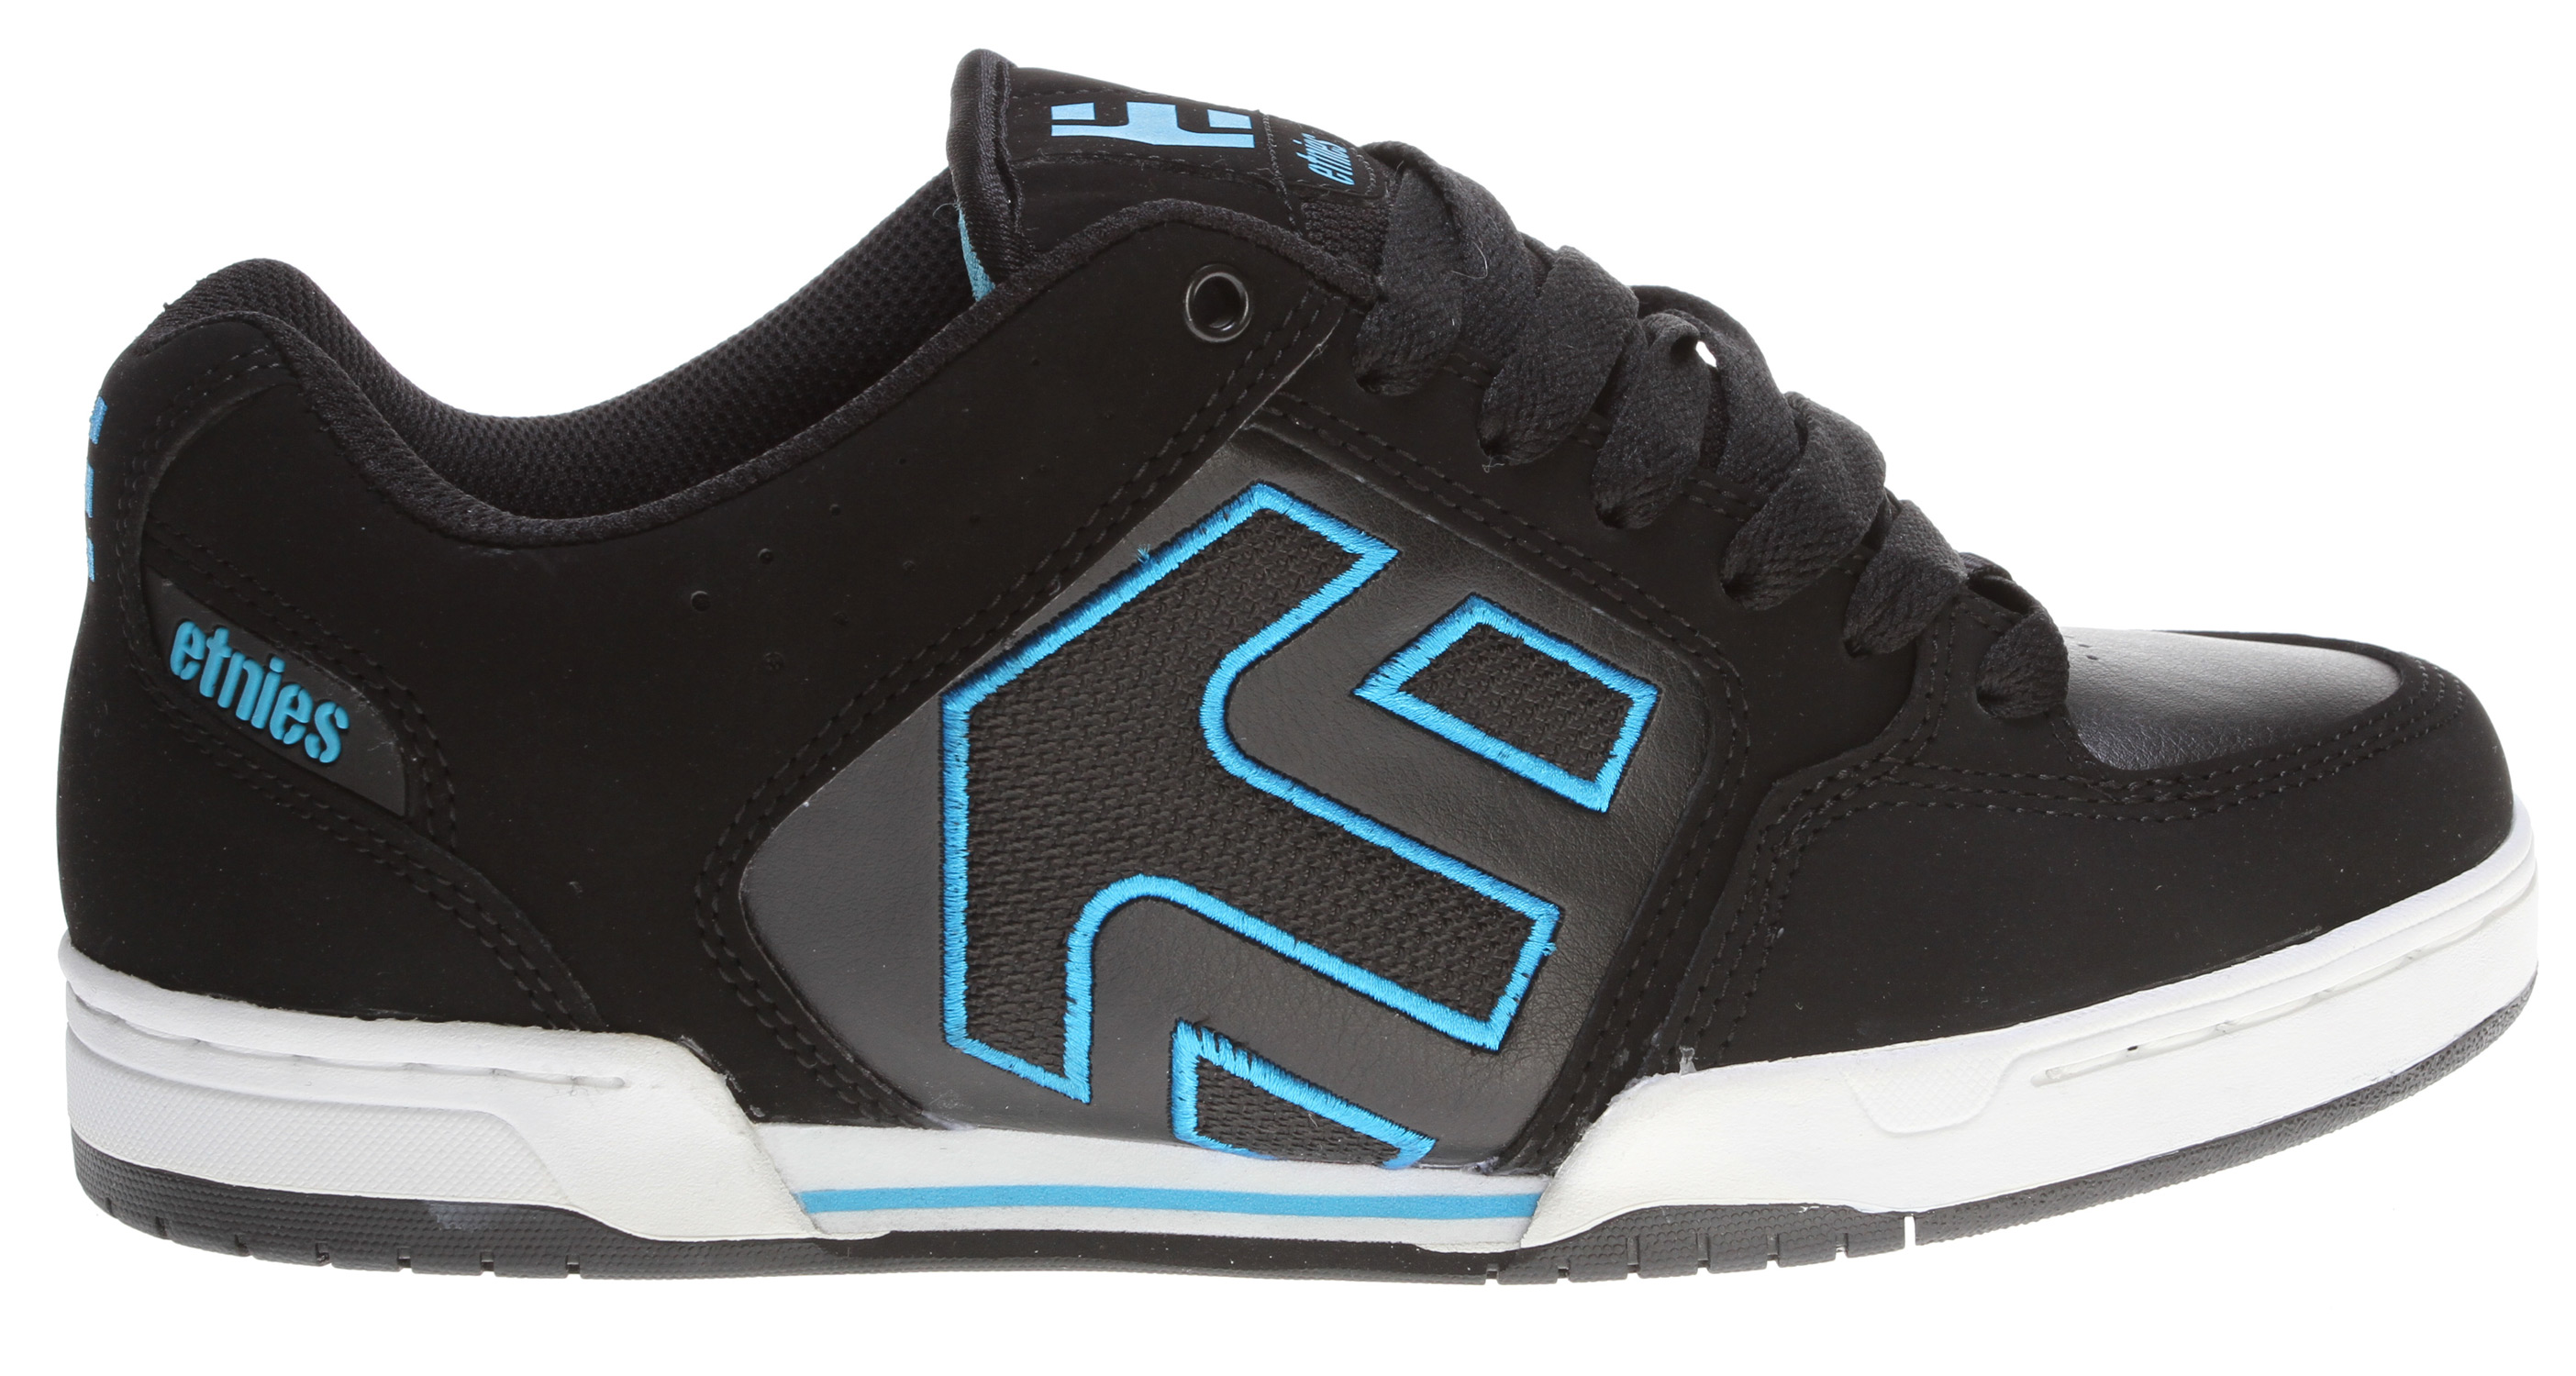 Skateboard Key Features of the Etnies Charter Skate Shoes: Trademark etnies Arrow logo integrated into heel area Padded tongue and collar STI Foam Lite level 1 footbed New 300 NBS double cup rubber outsole with exposed EVA midsole - $48.95